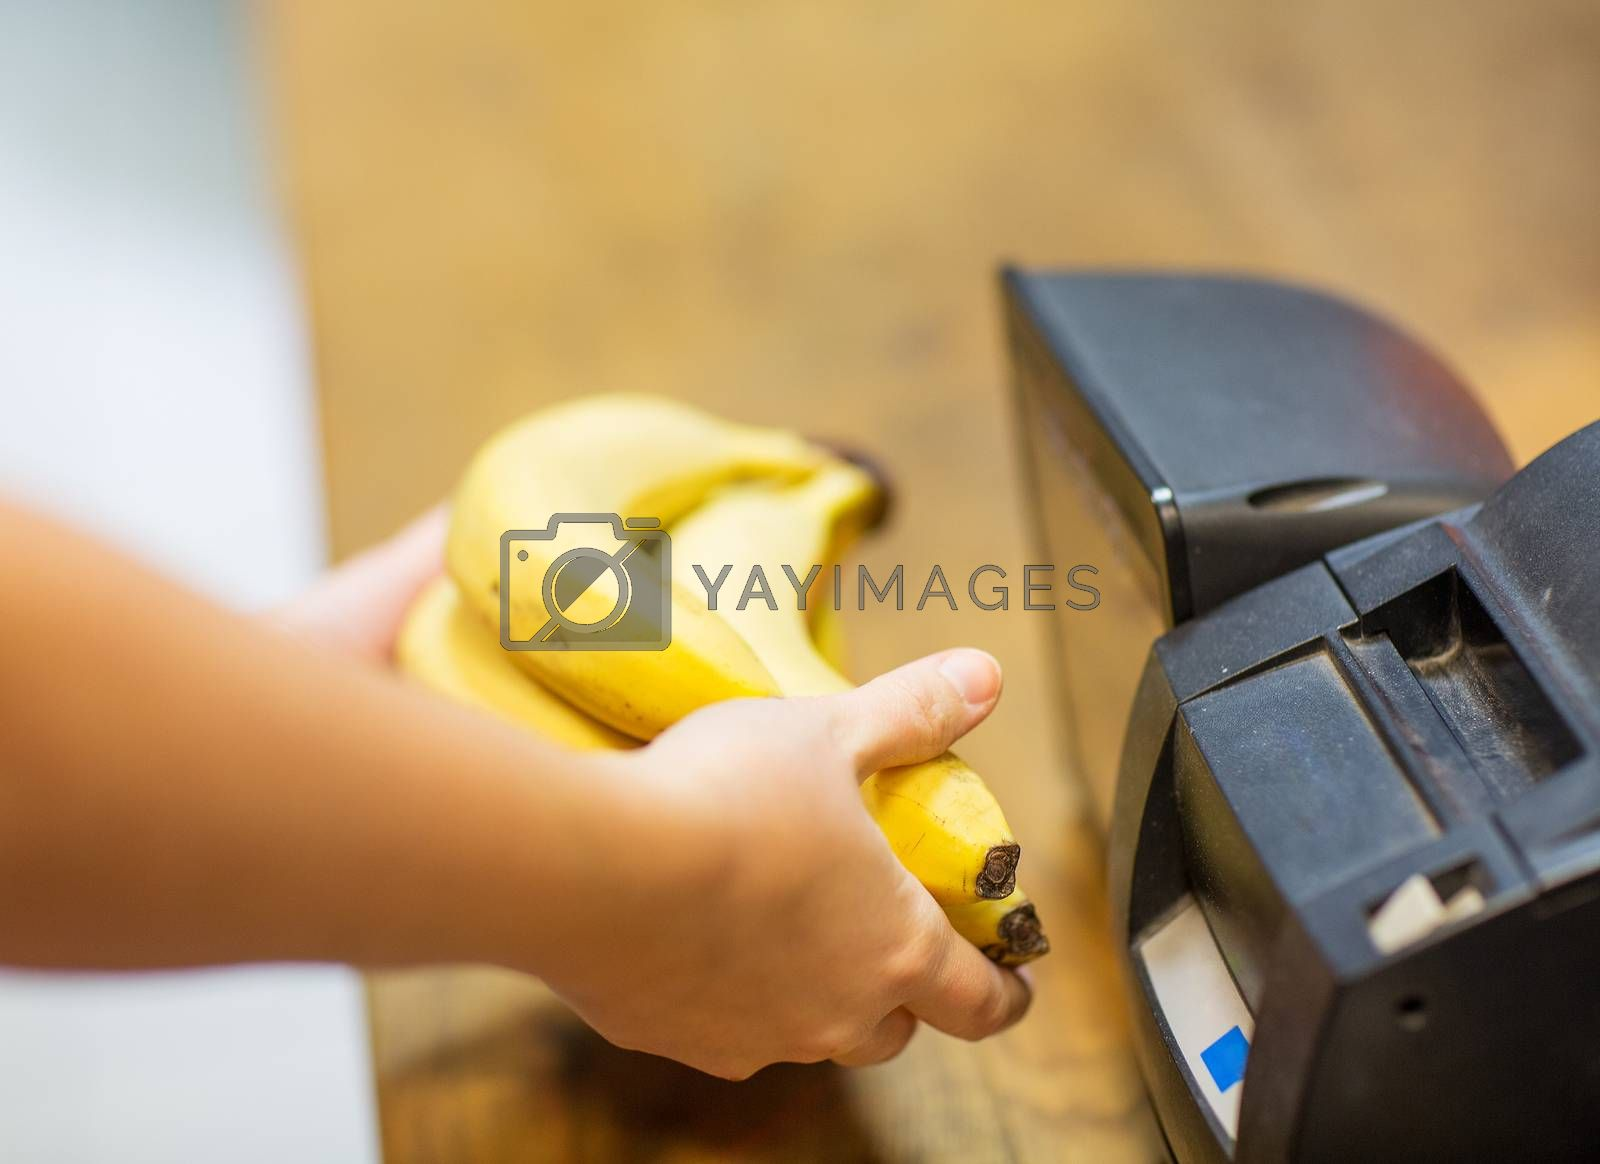 sale, shopping, payment, consumerism and people concept - close up of hands buying or scanning bananas at checkout in food market or mall